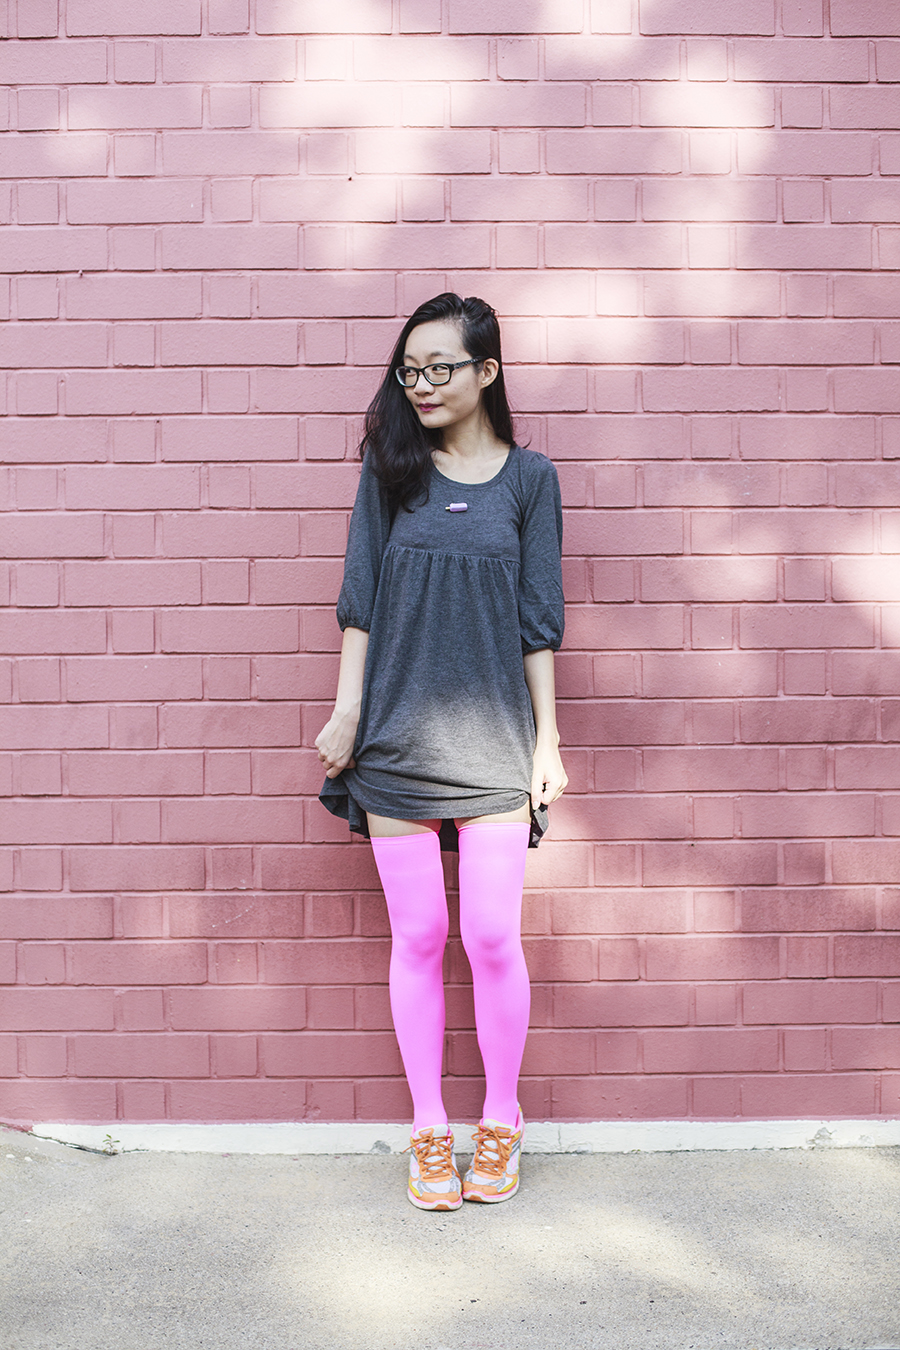 We Love Colors Outfit: We Love Colors neon pink thigh high stockings, Skechers neon sneakers, Forever 21 grey babydoll dress,  old school potong ice cream pin, Gap black rimmed glasses.